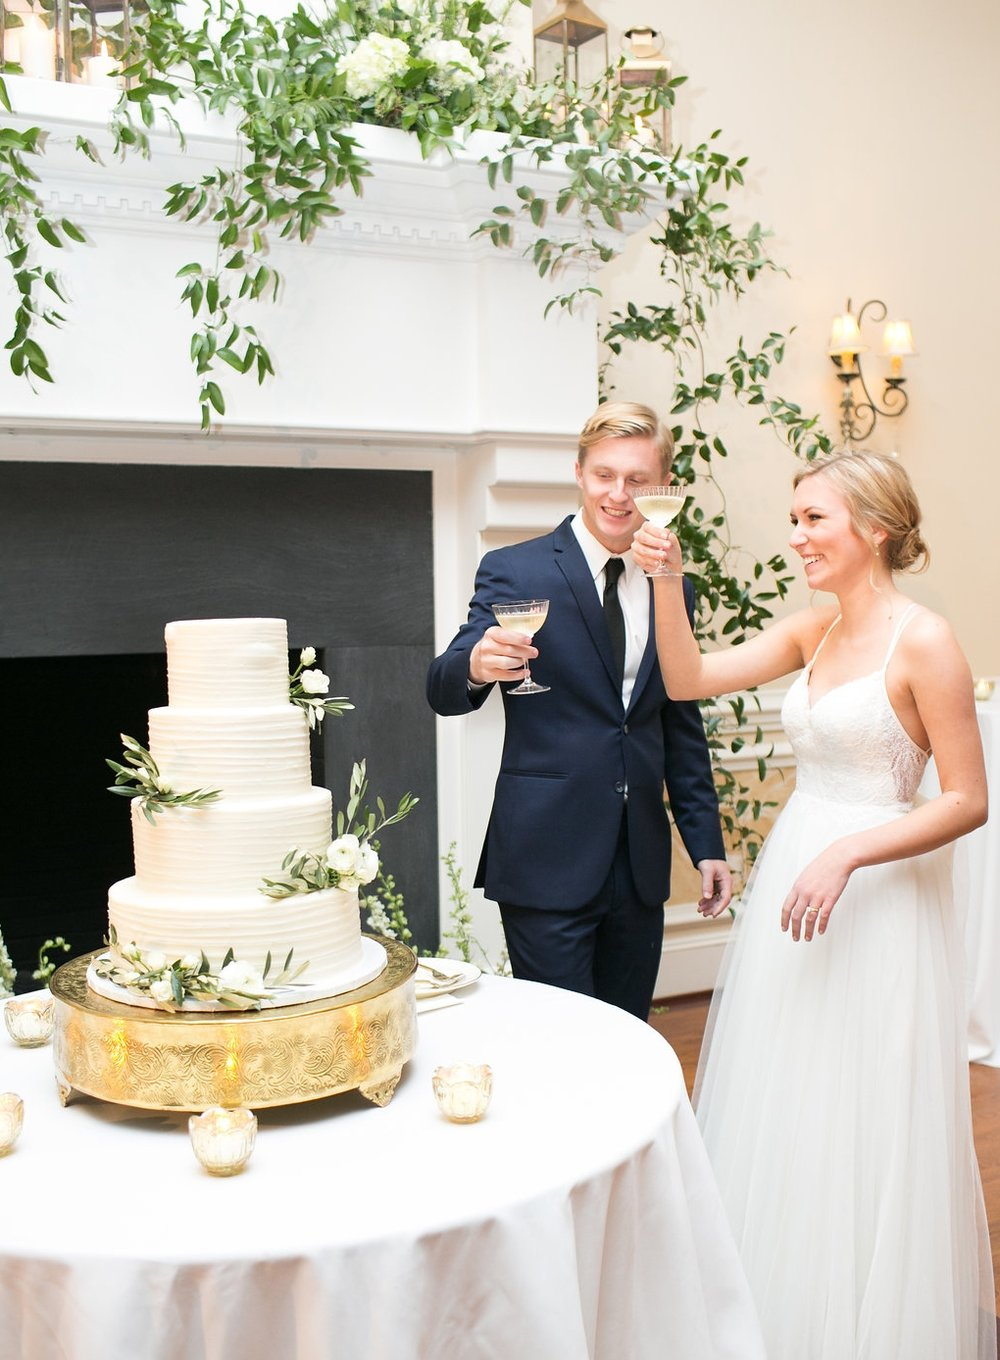 Cake Cutting with the Bride and Groom